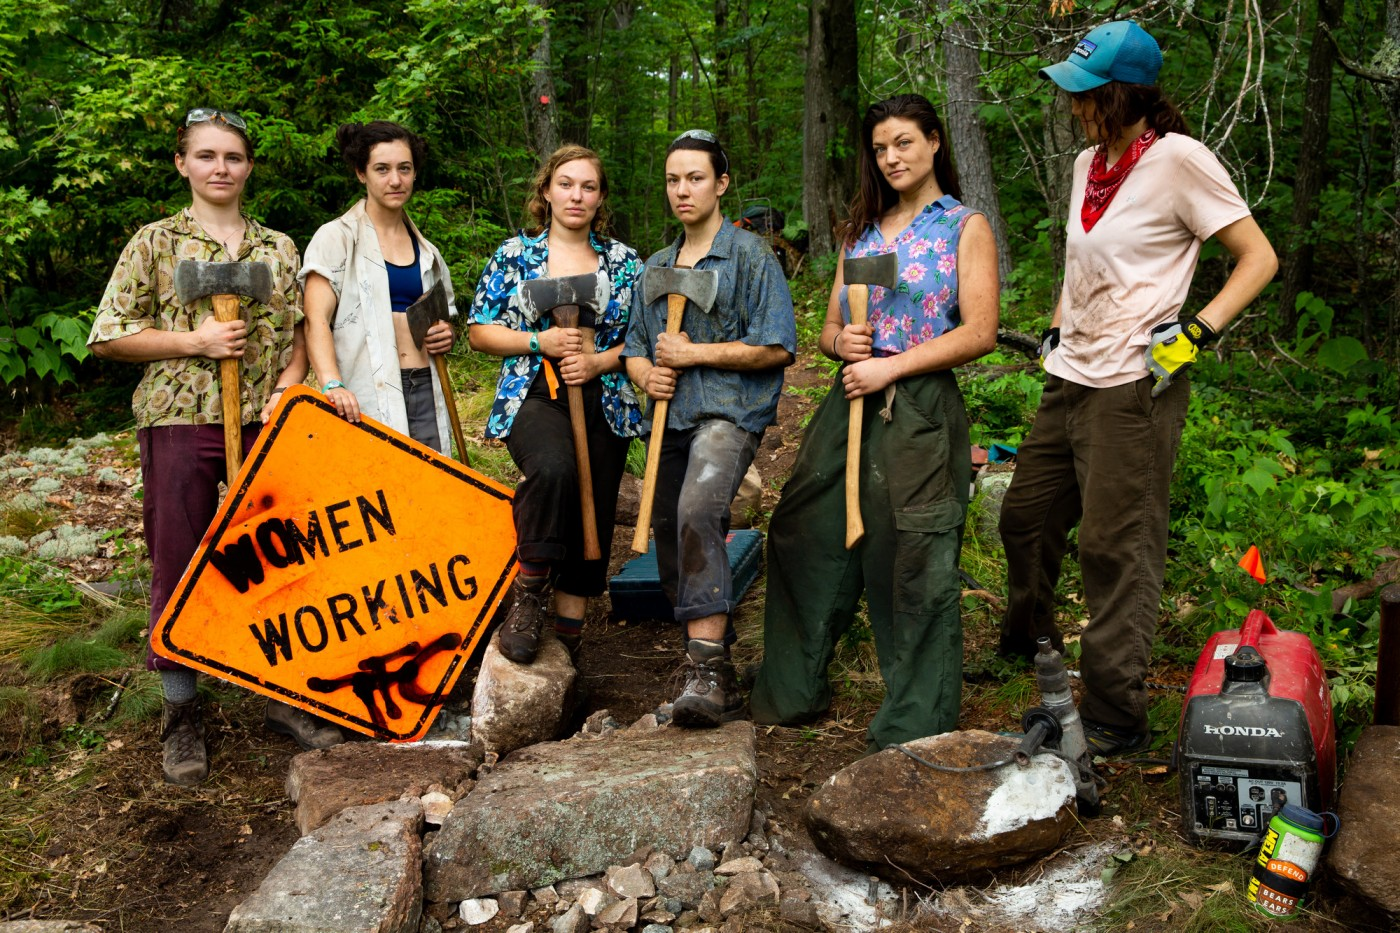 The Adirondack Trail Crew, from left: Char, Crandy, Nami, Nips, Two-Scent, and Kirby.